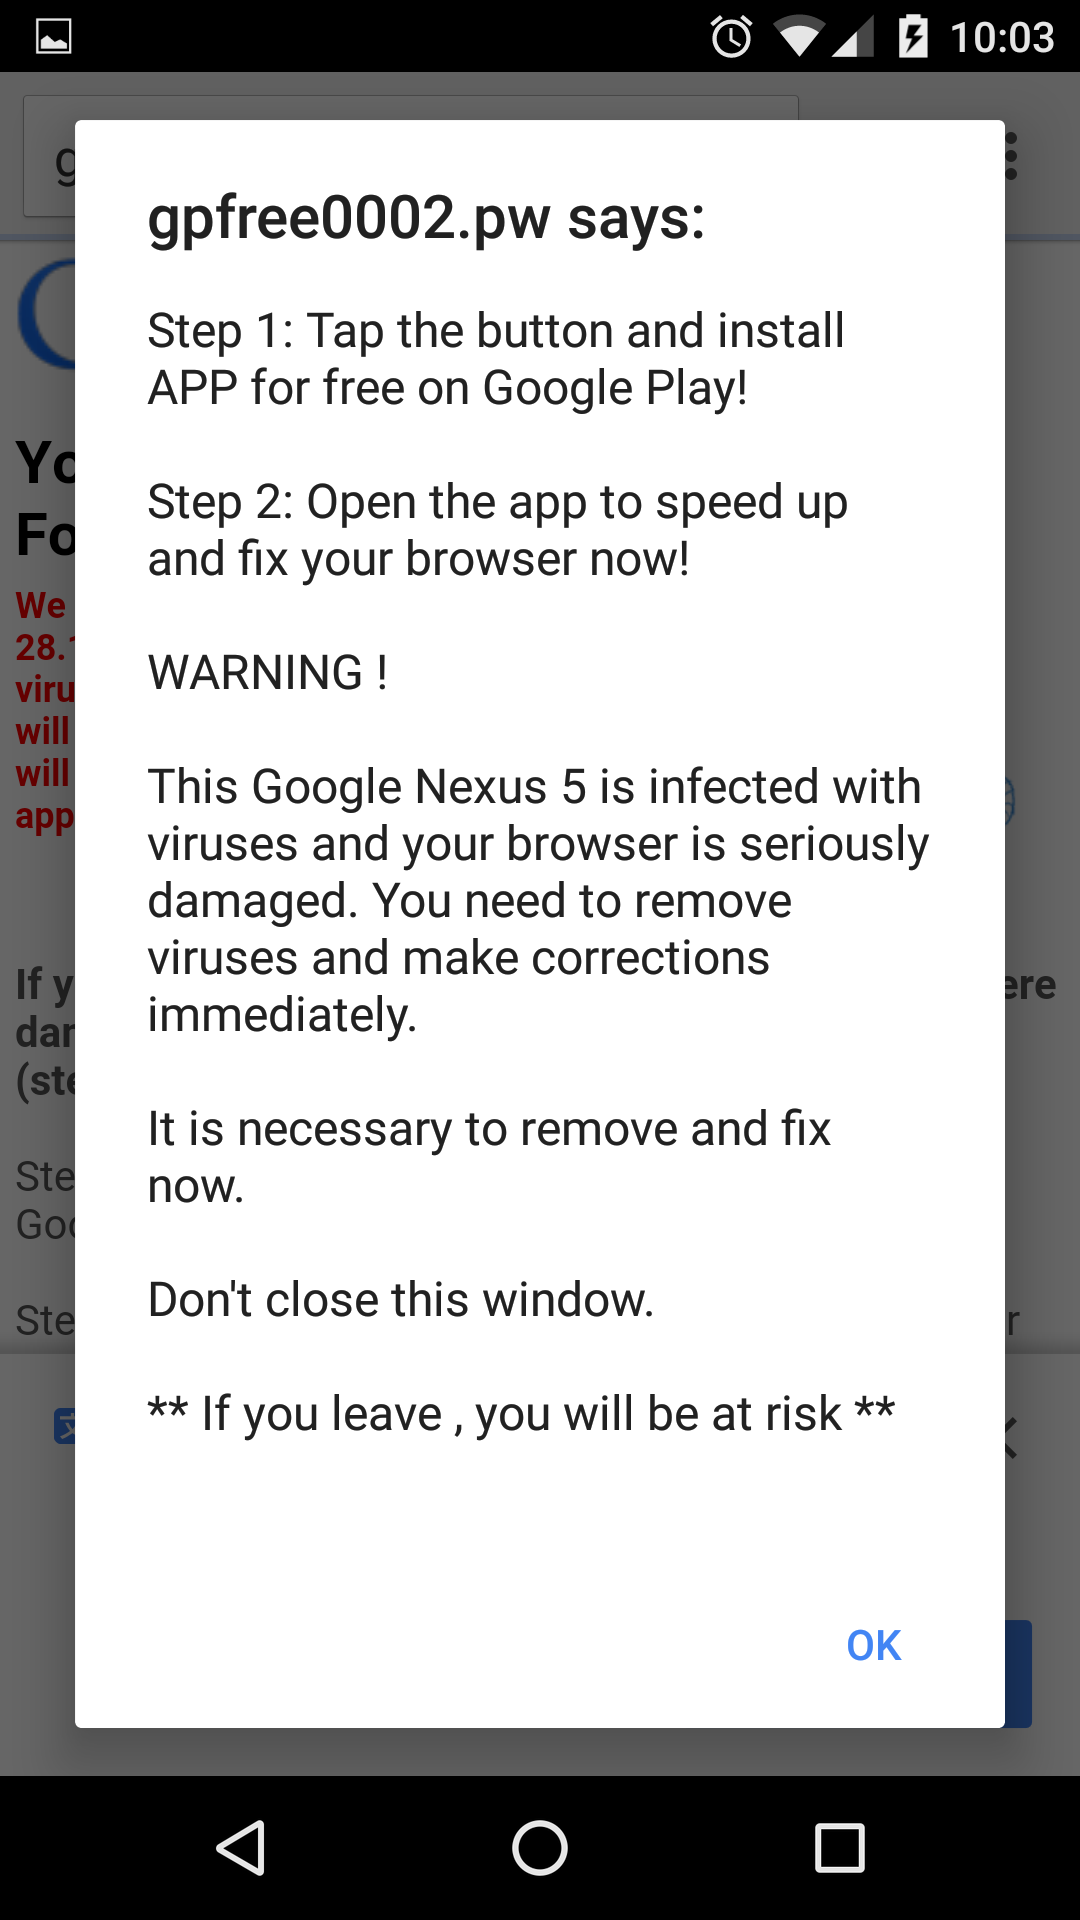 Uncategorized www google com br google chrome android - Fake Virus Warning On Imgur Pages Android Phones Only Thecomputerperson